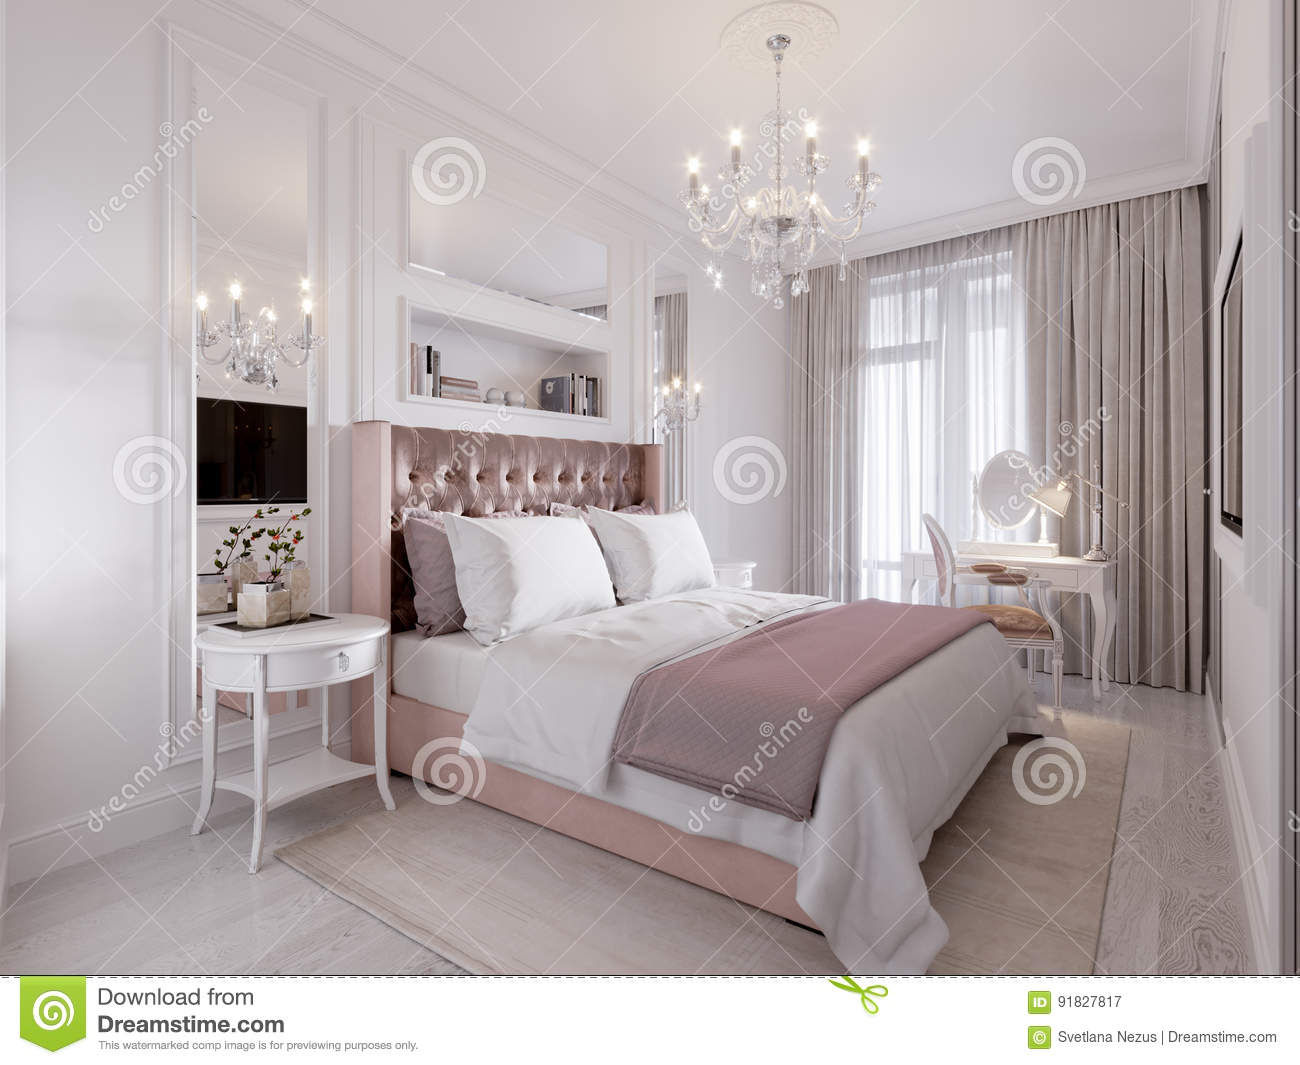 arbeitsplatz im schlafzimmer bilder schlafzimmer ideen lattenroste haltbarkeit done by deer. Black Bedroom Furniture Sets. Home Design Ideas